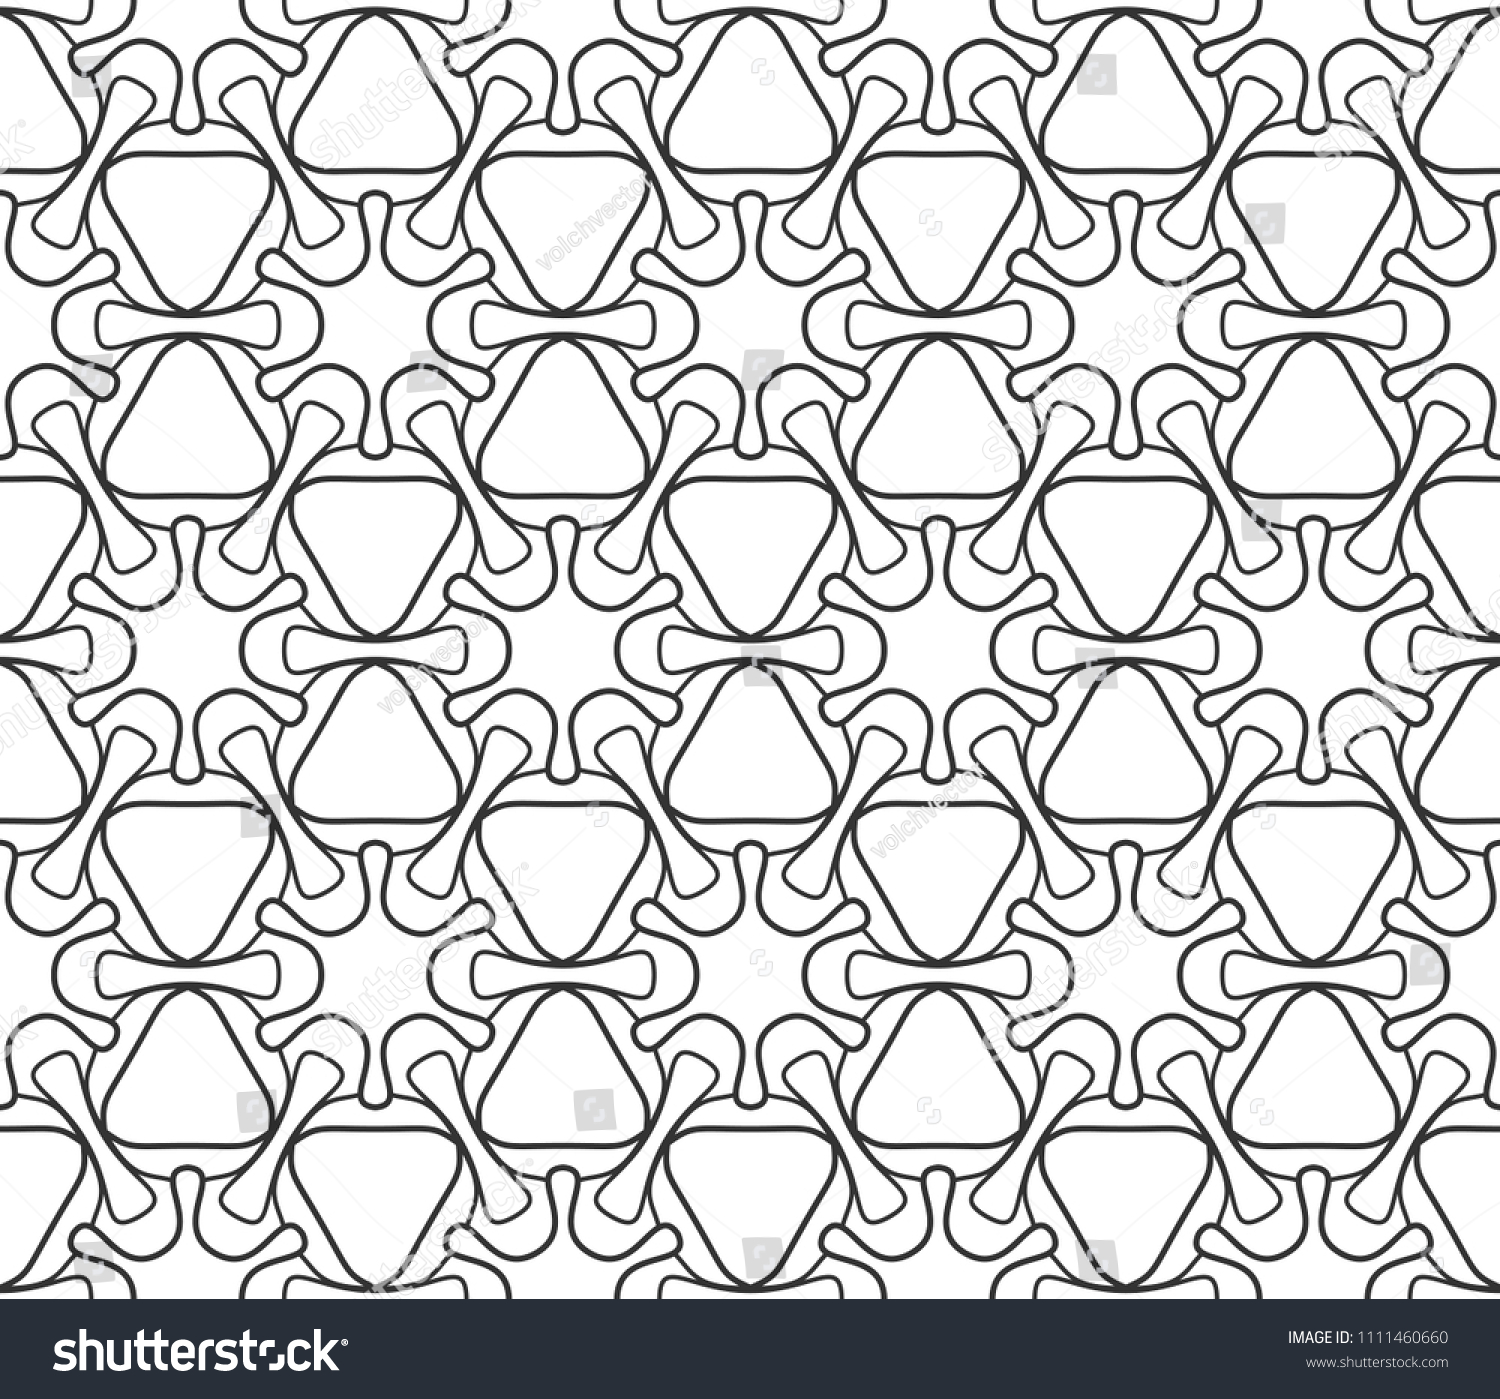 Seamless Geometric Line Pattern In Arabic Style Repeating Linear Texture